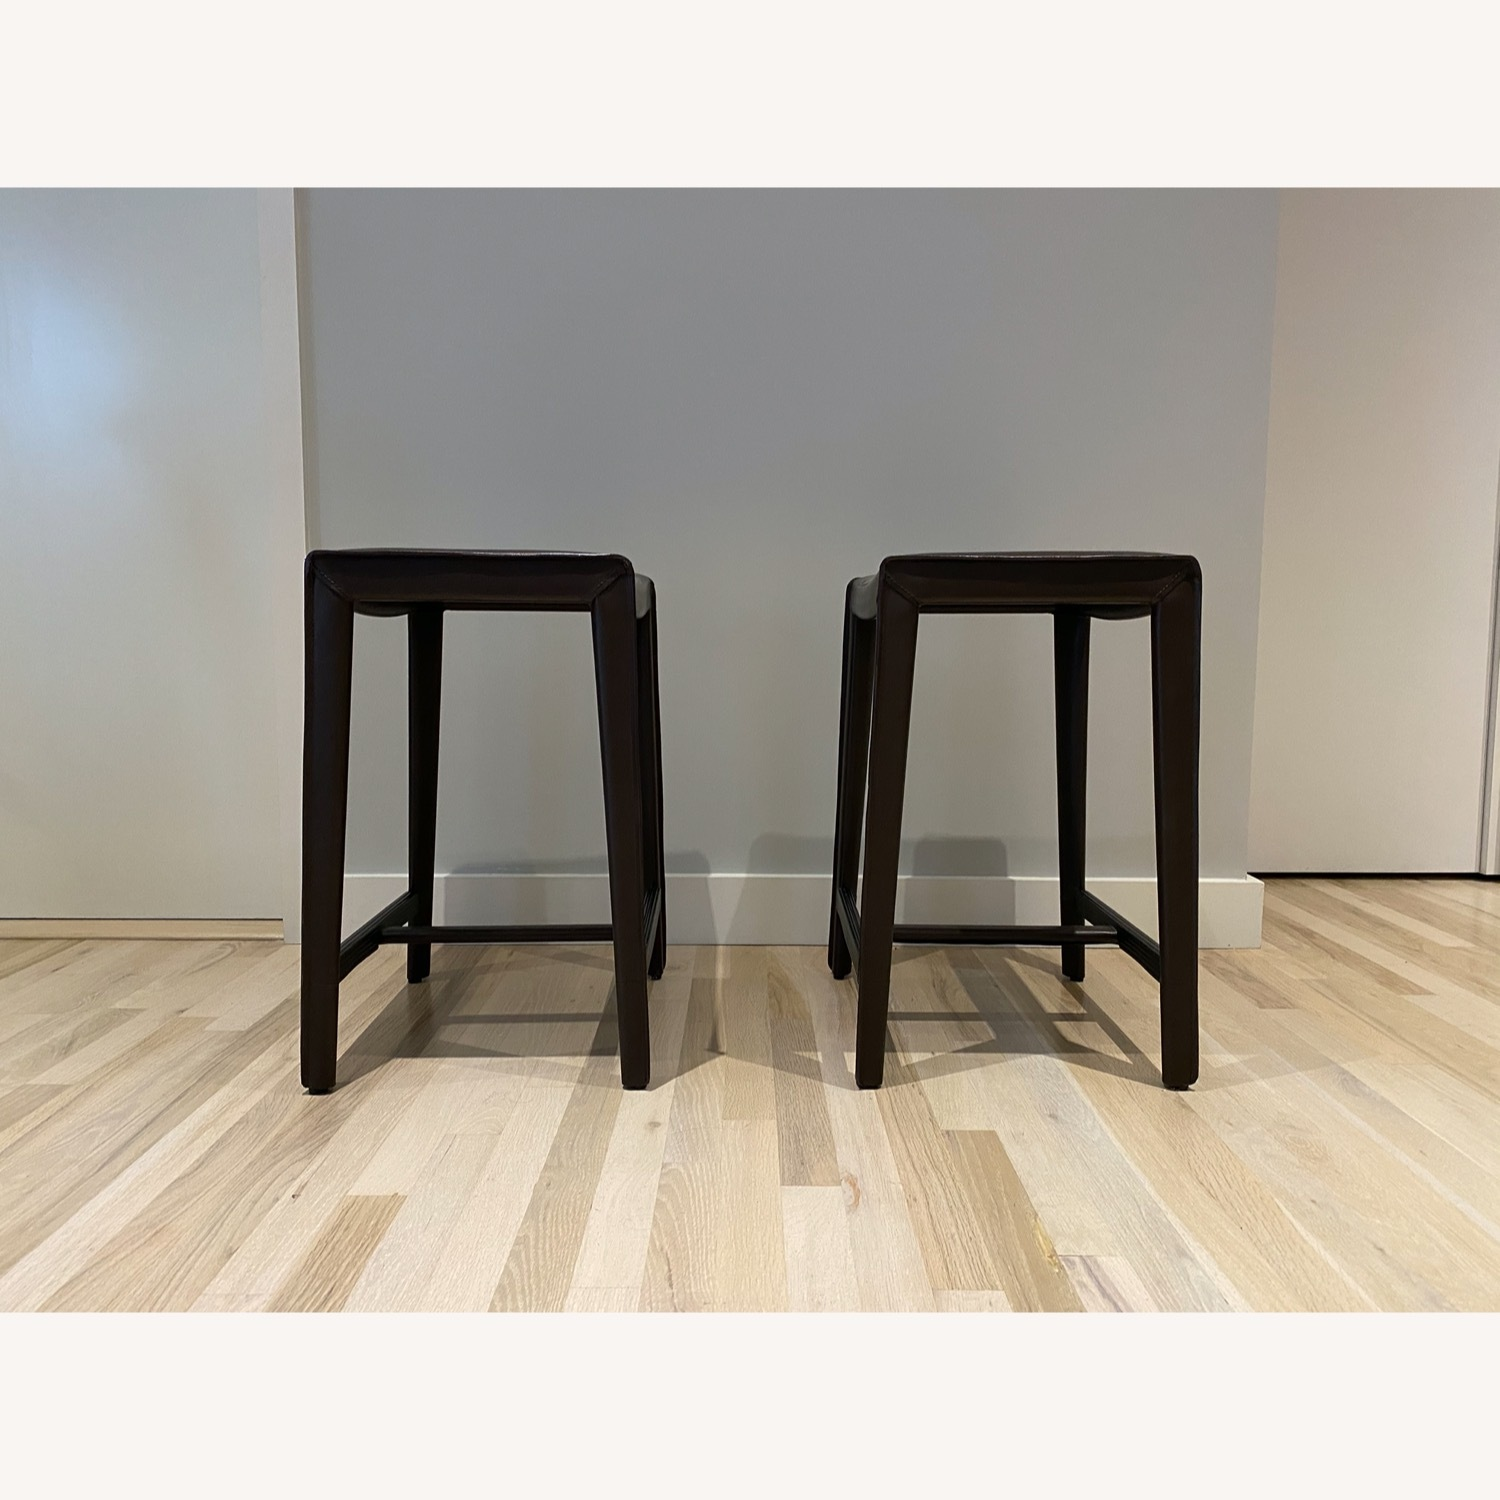 Set of Crate & Barrel Backless Counter Stools - image-2